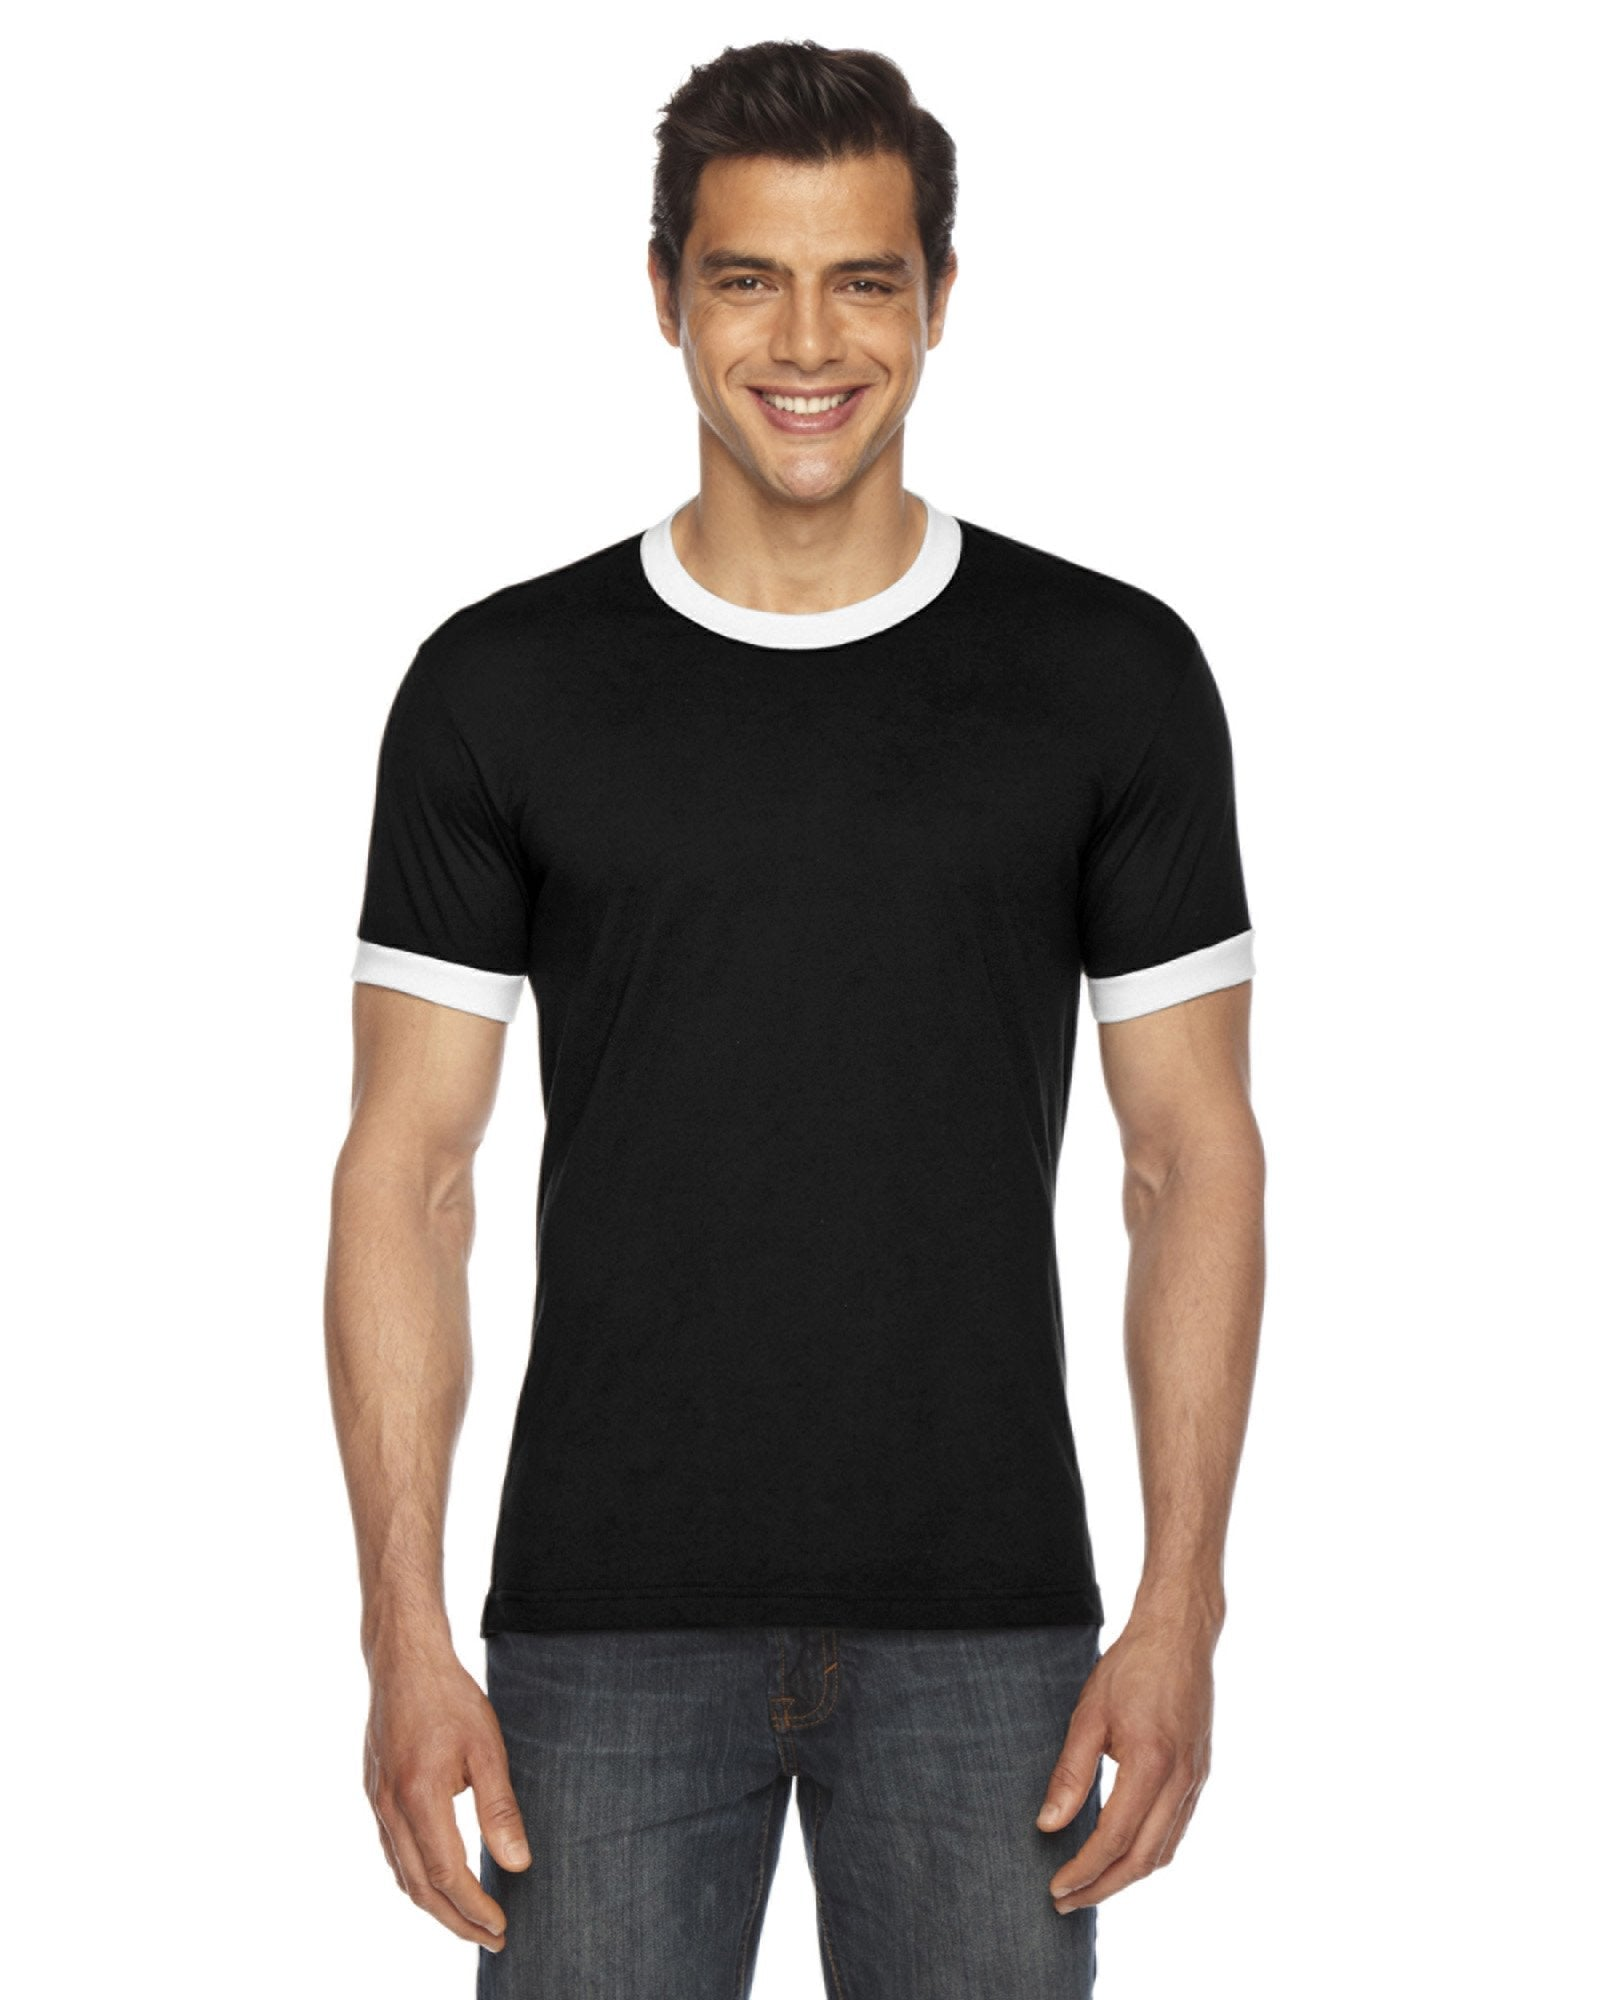 American Apparel - BB410 - Unisex Poly-Cotton Short-Sleeve Ringer T-Shirt